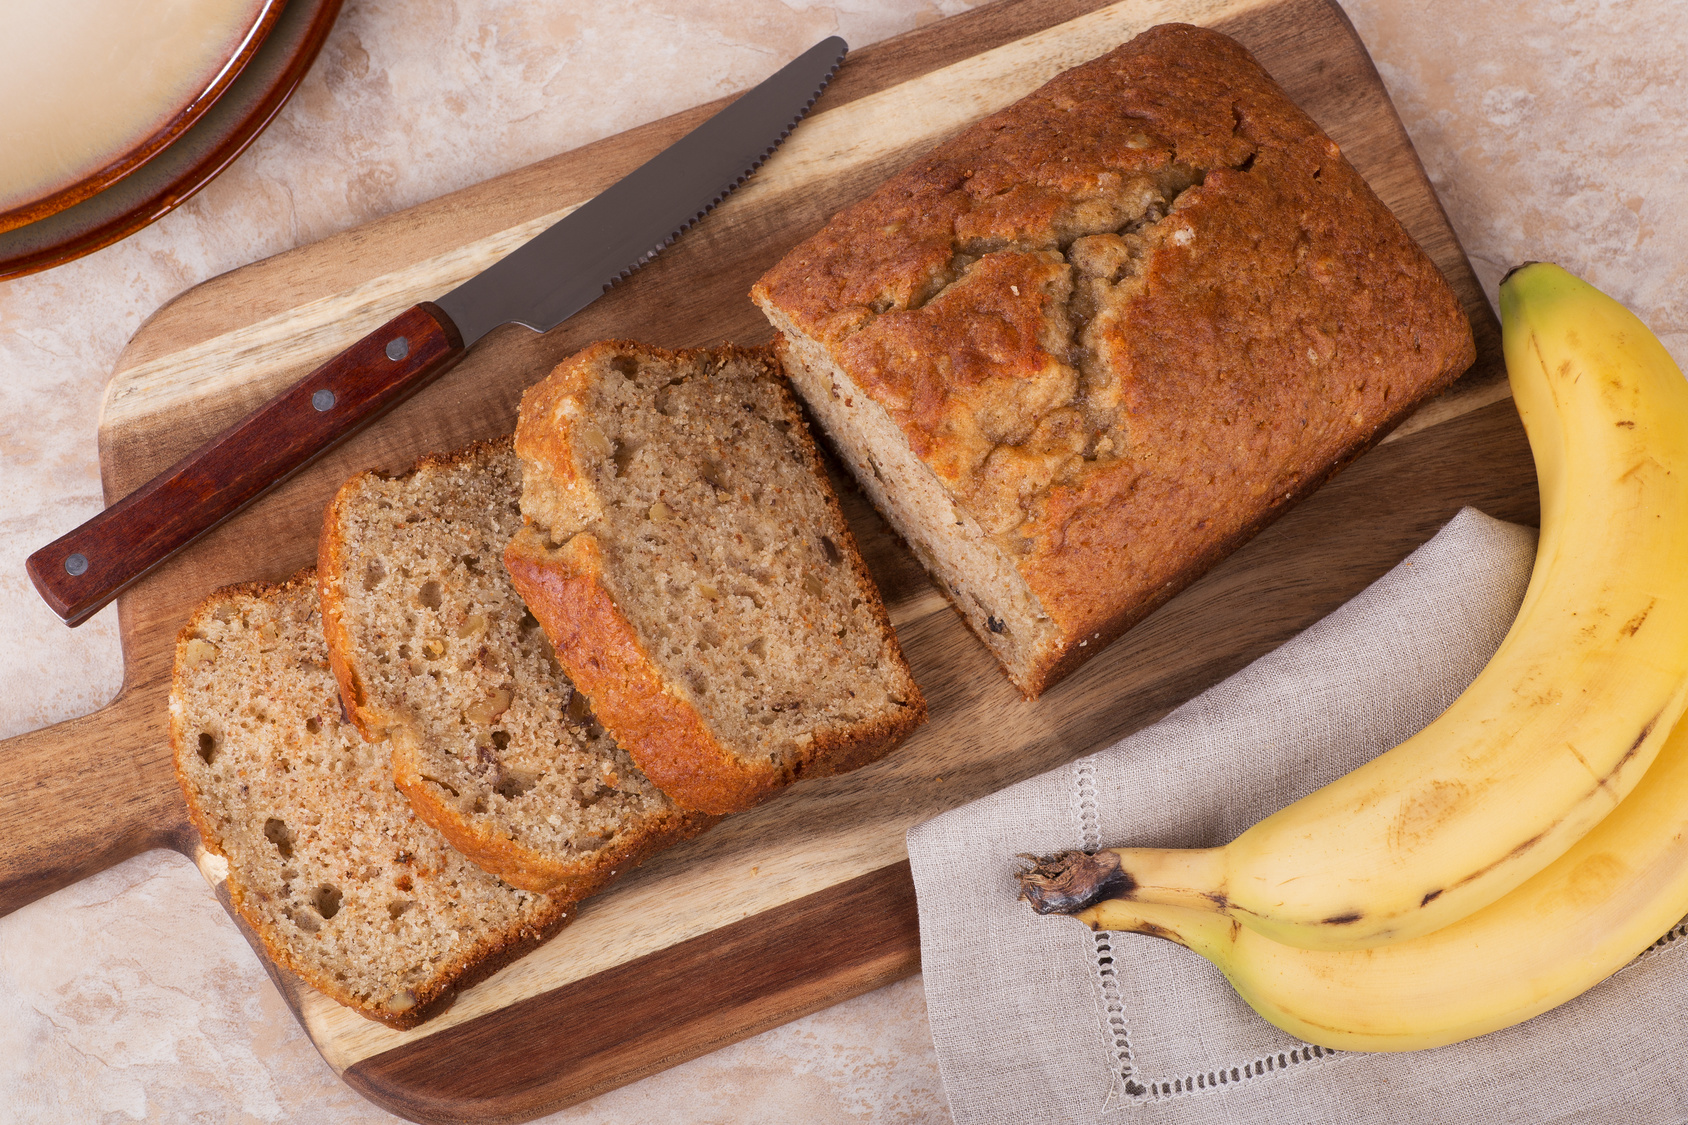 Banana nut bread sliced on a wooden cutting board with bananas on the side